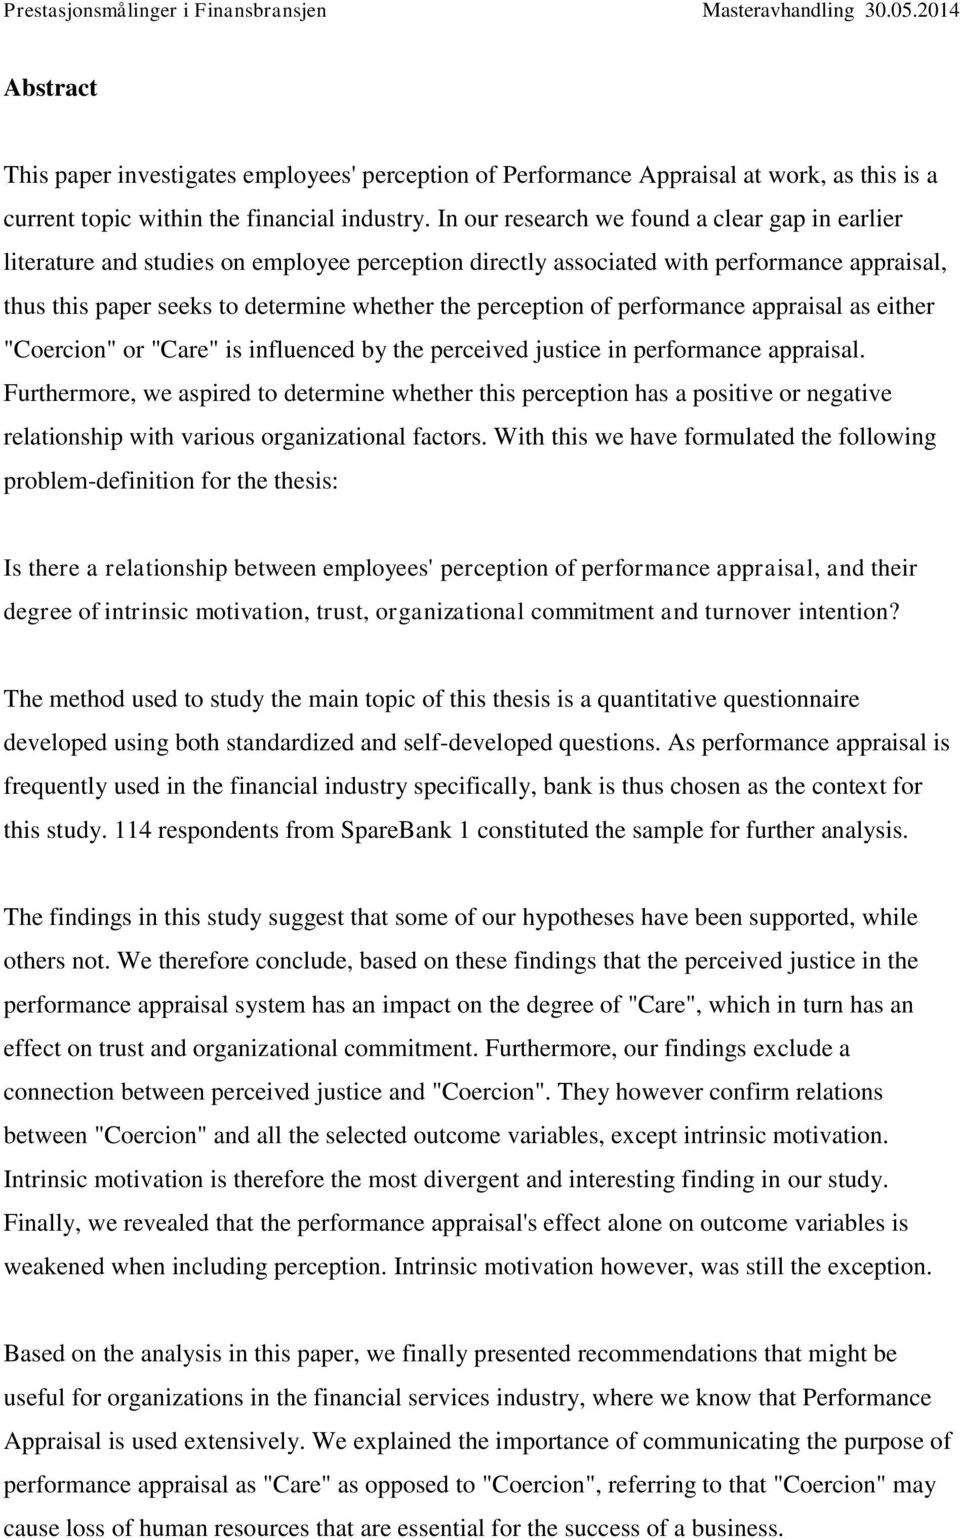 "of performance appraisal as either ""Coercion"" or ""Care"" is influenced by the perceived justice in performance appraisal."